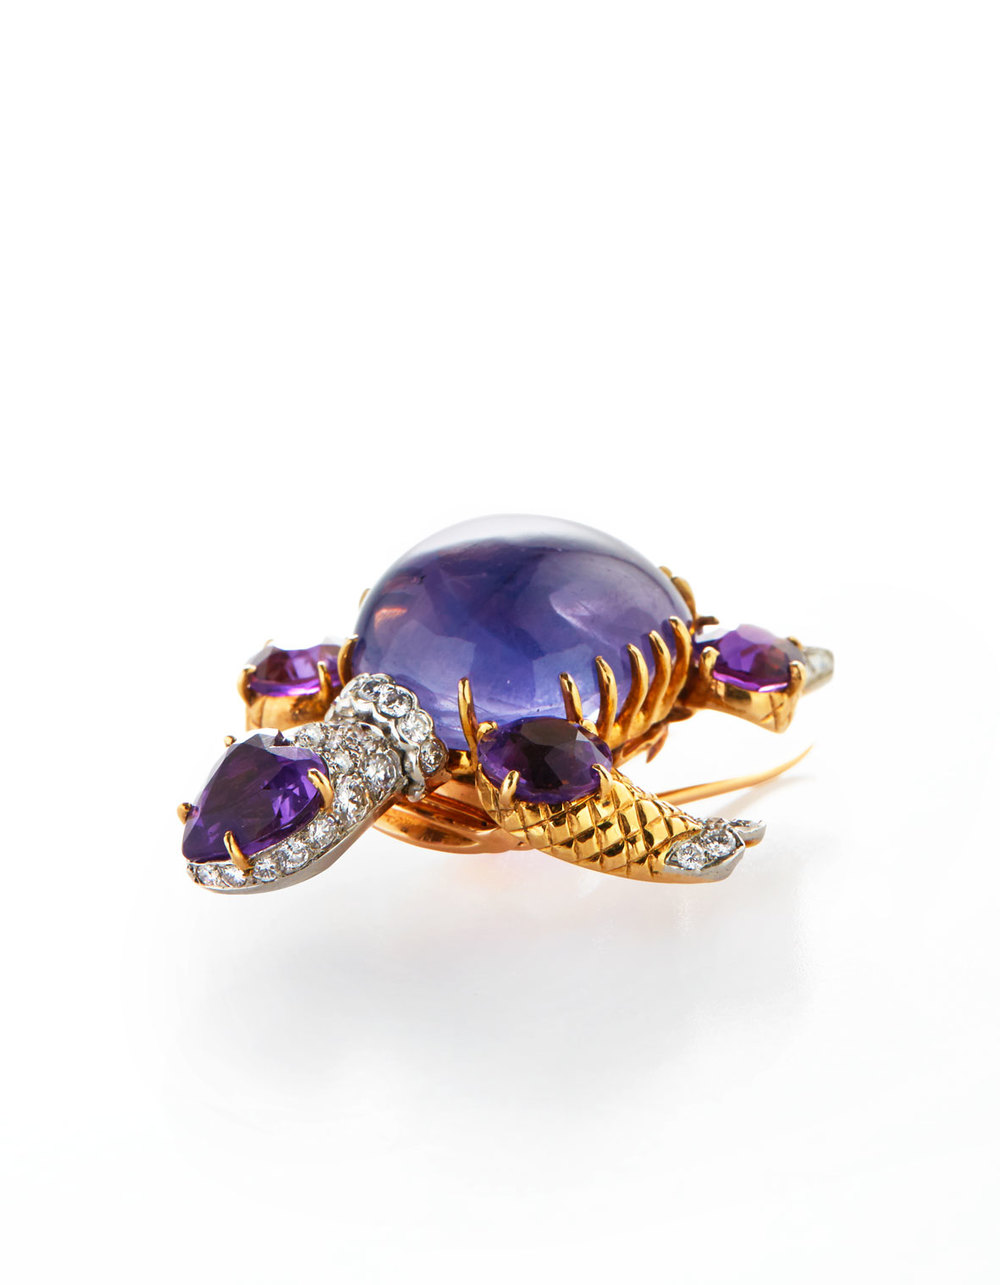 A diamond, Sapphire and Amethyst Turtle Brooch, by Cartier